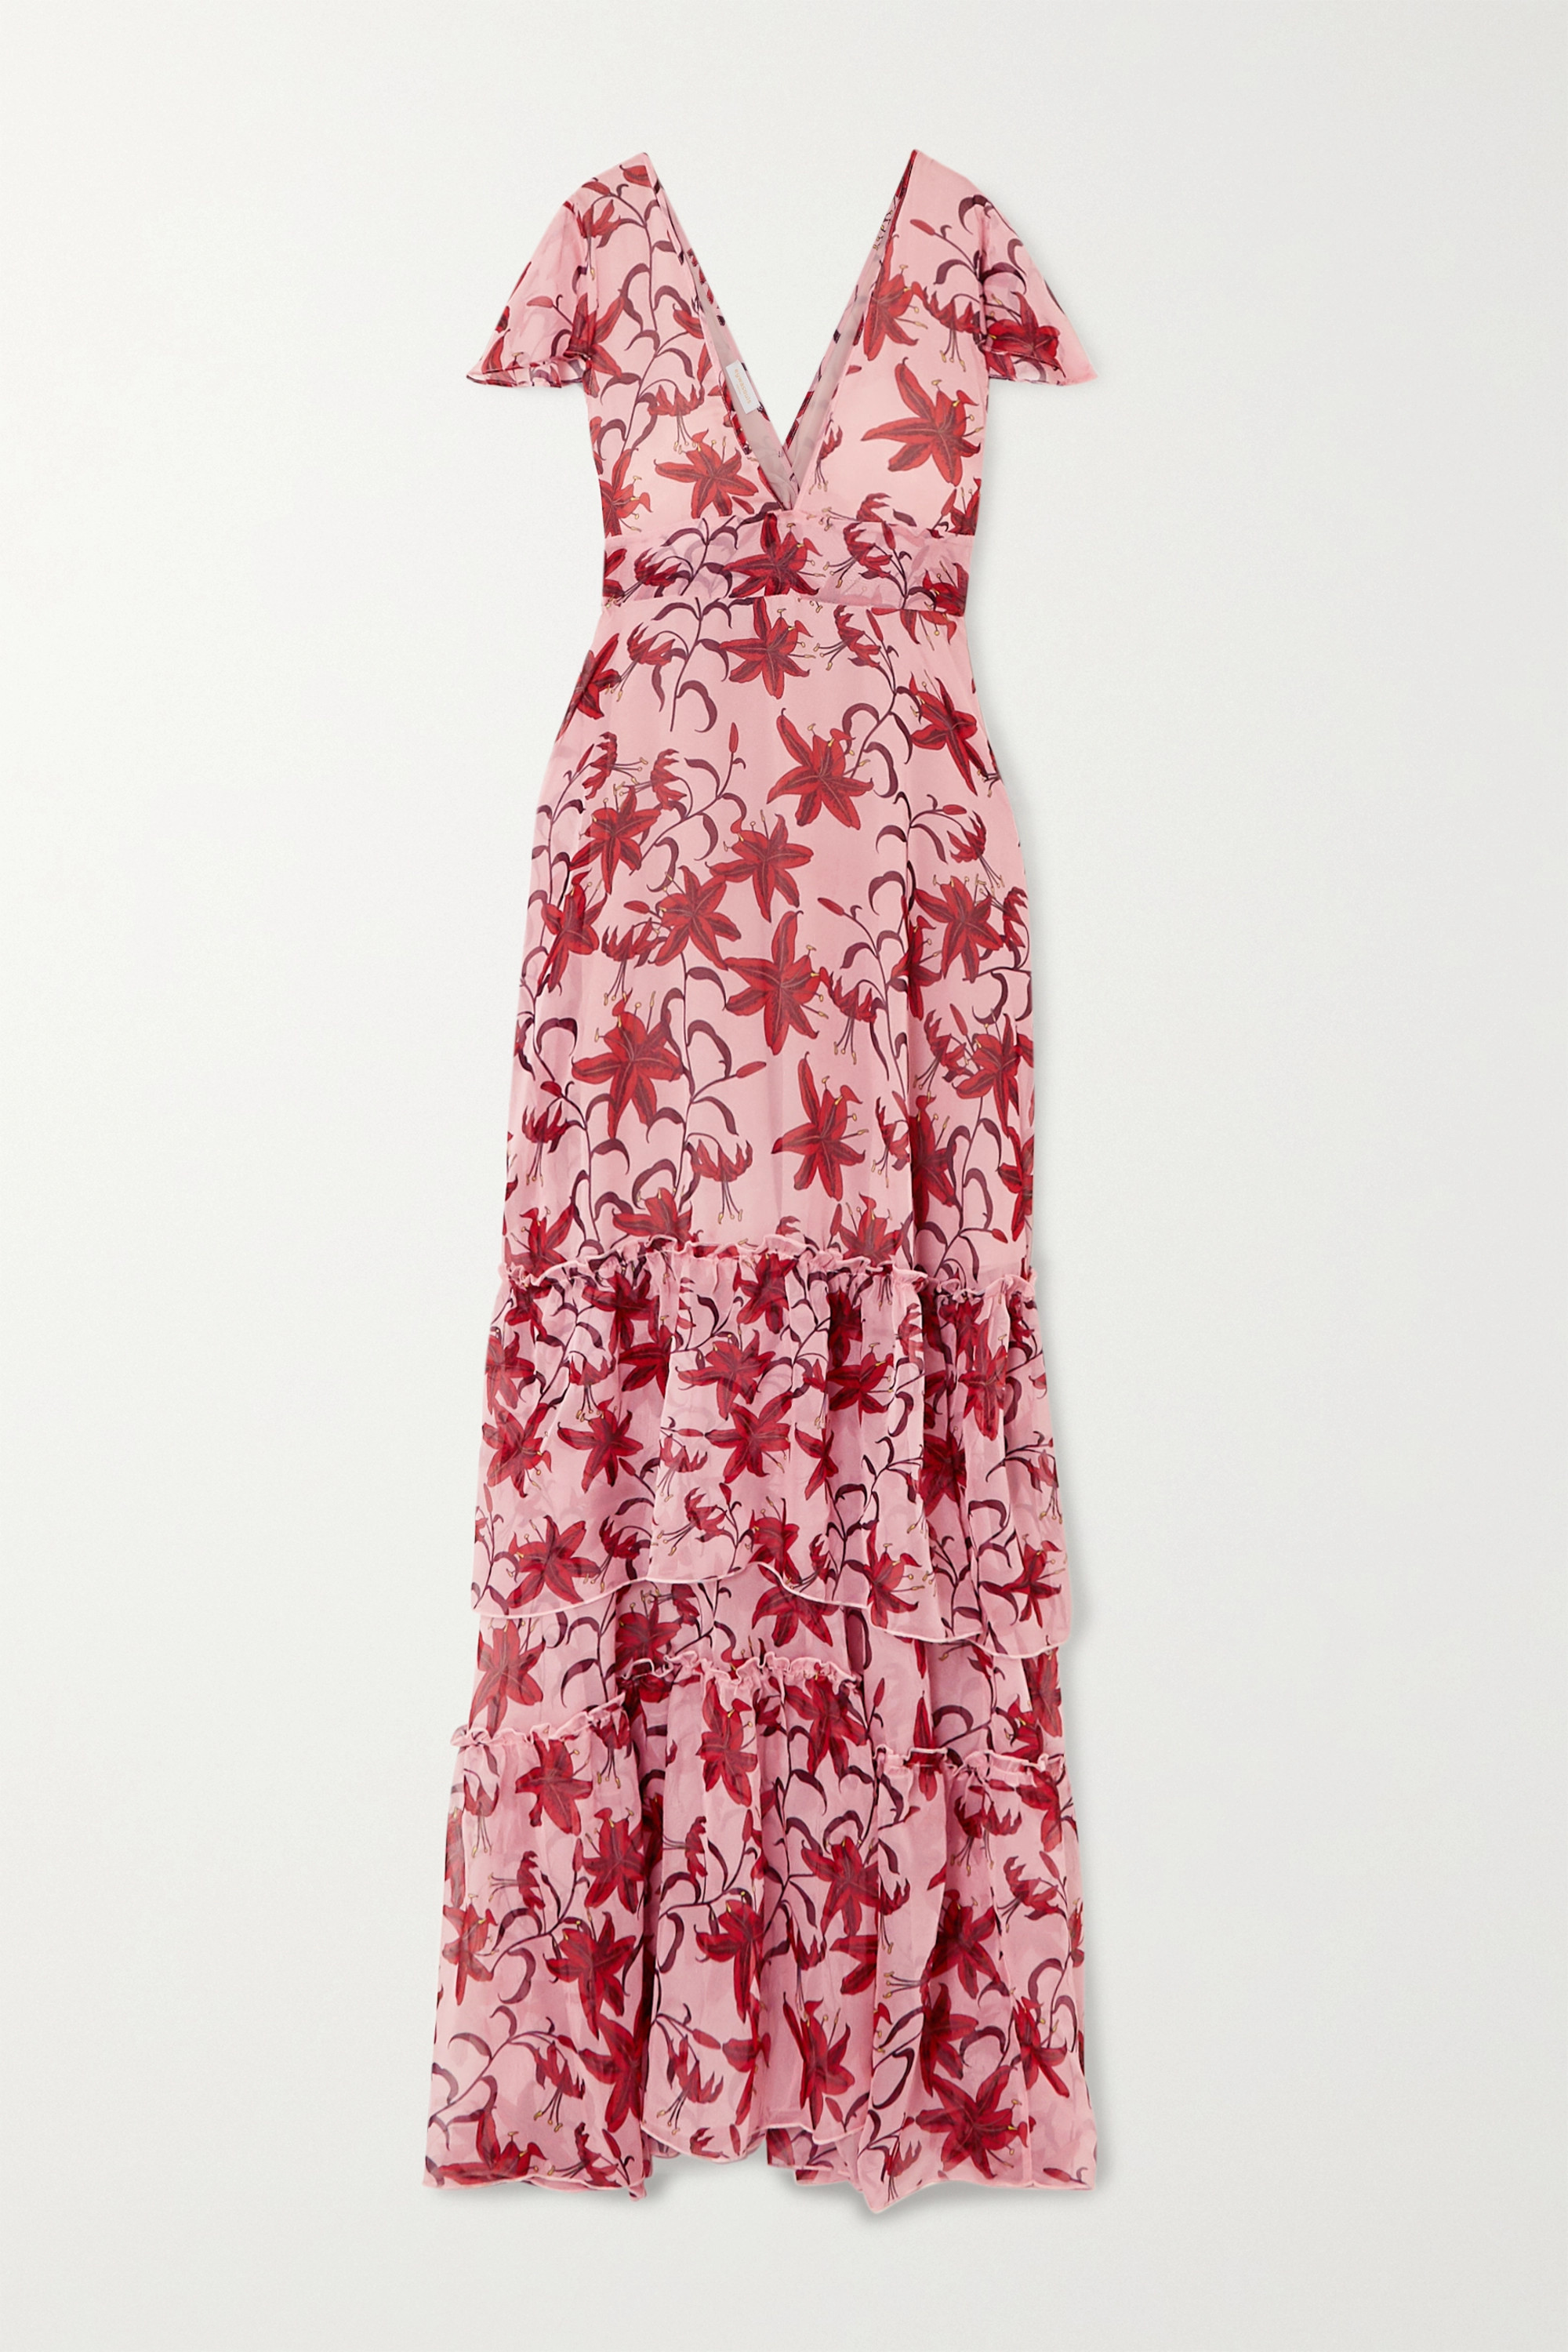 Eywasouls Malibu Kimi tiered ruffled floral-print chiffon dress